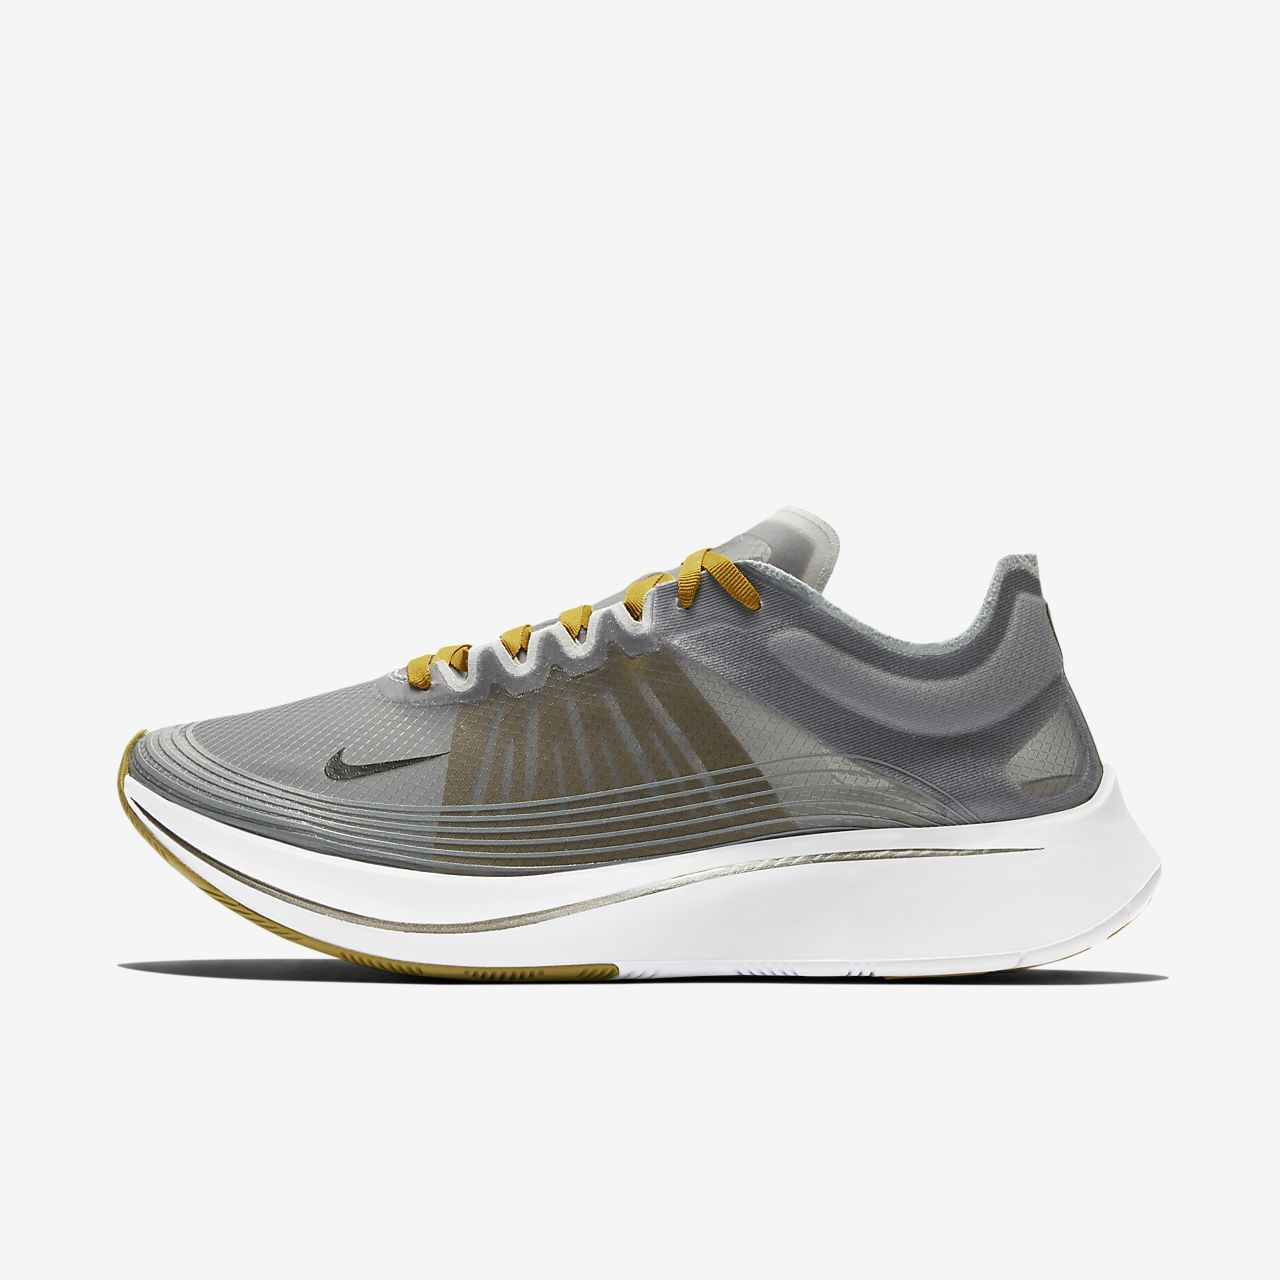 20da3af75c76 Nike Zoom Fly SP Running Shoe. Nike.com